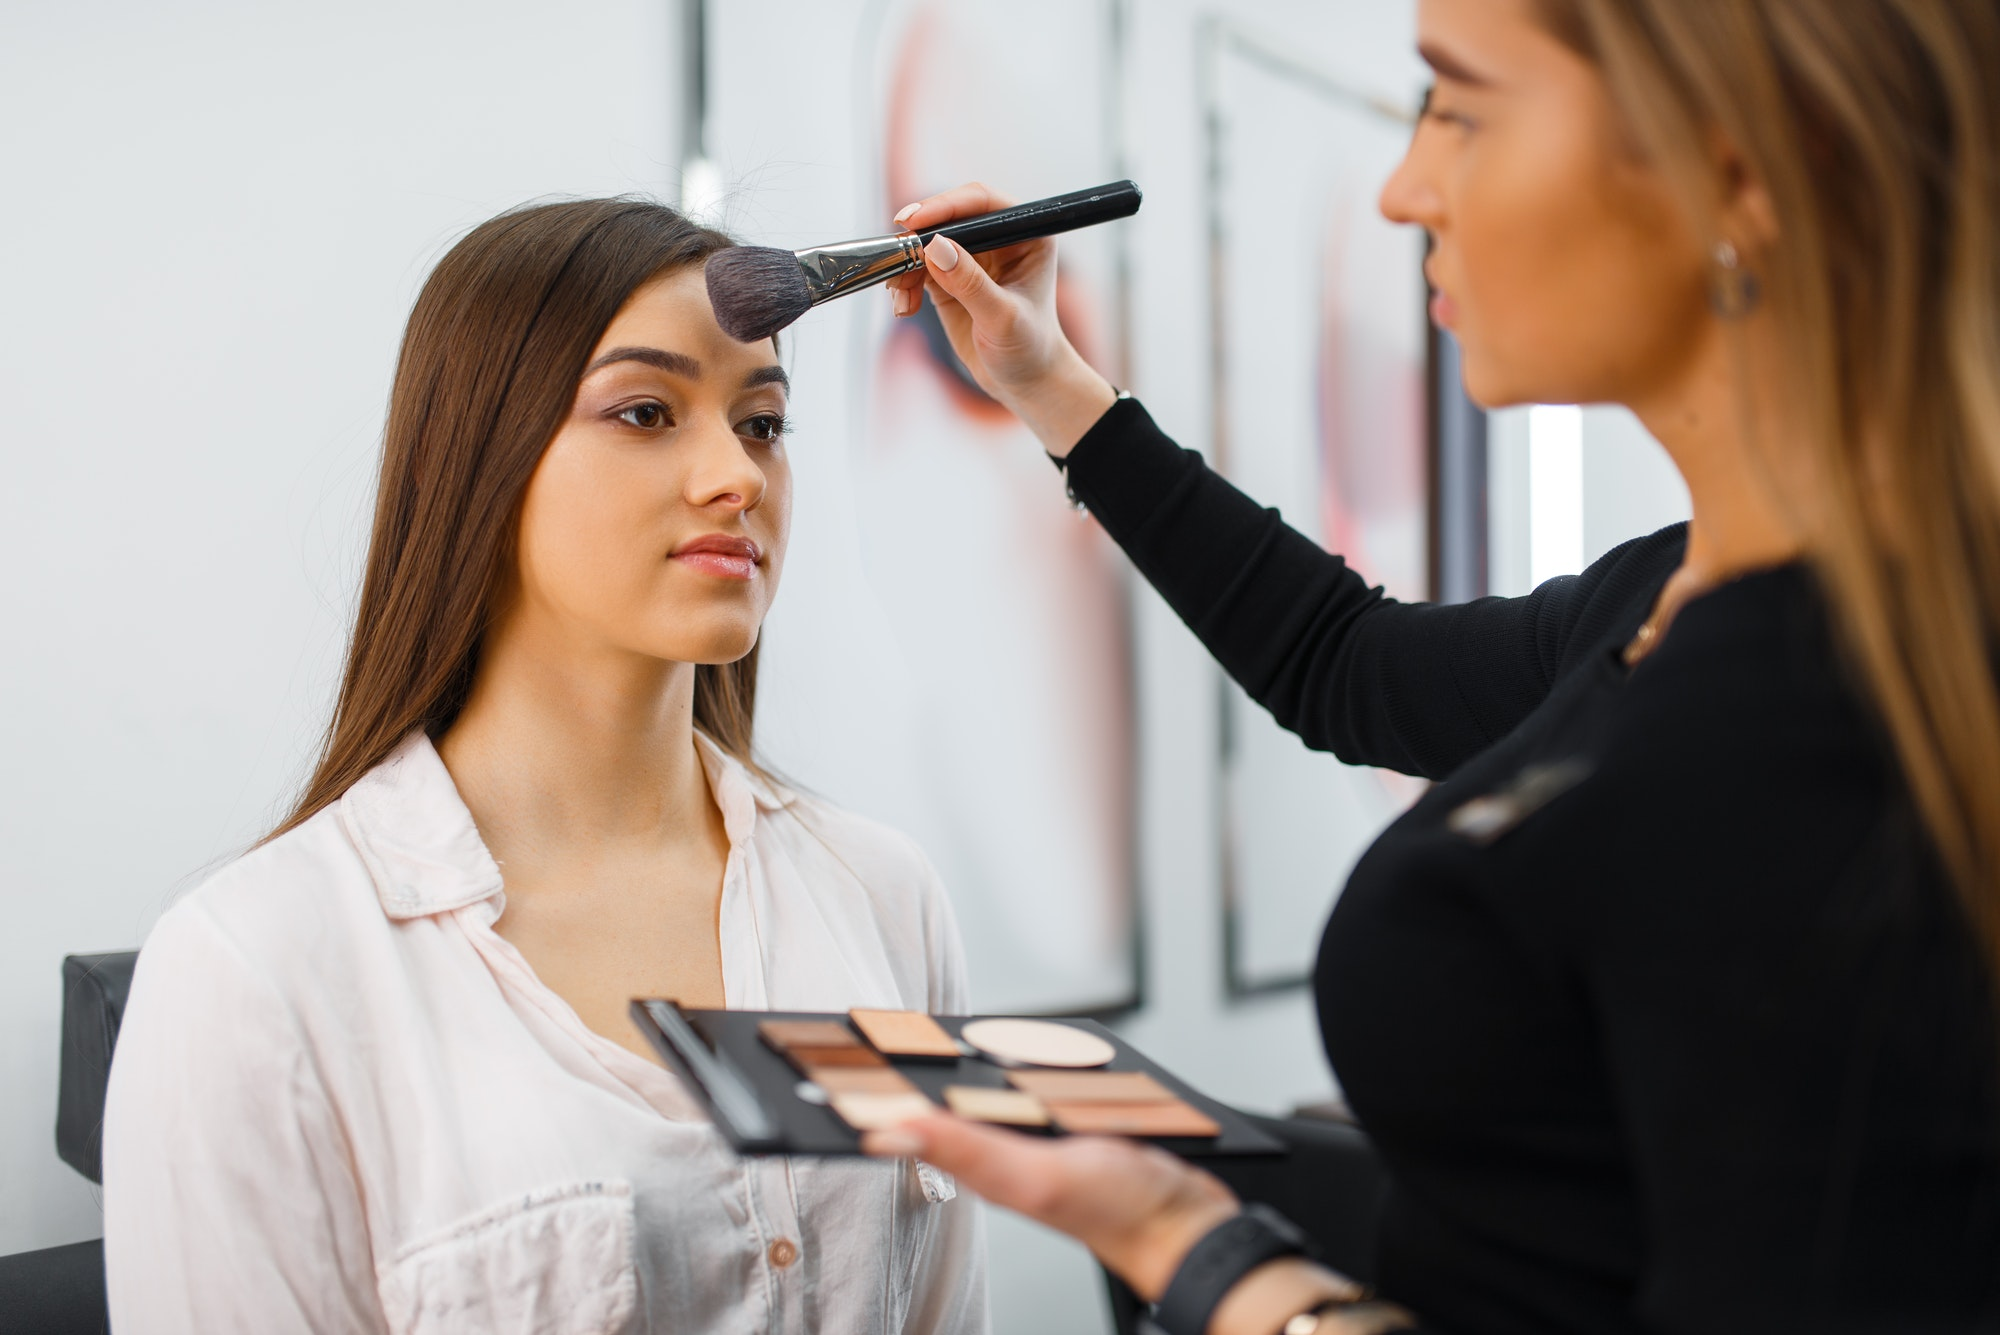 Cosmetician with brush and woman, cosmetics store